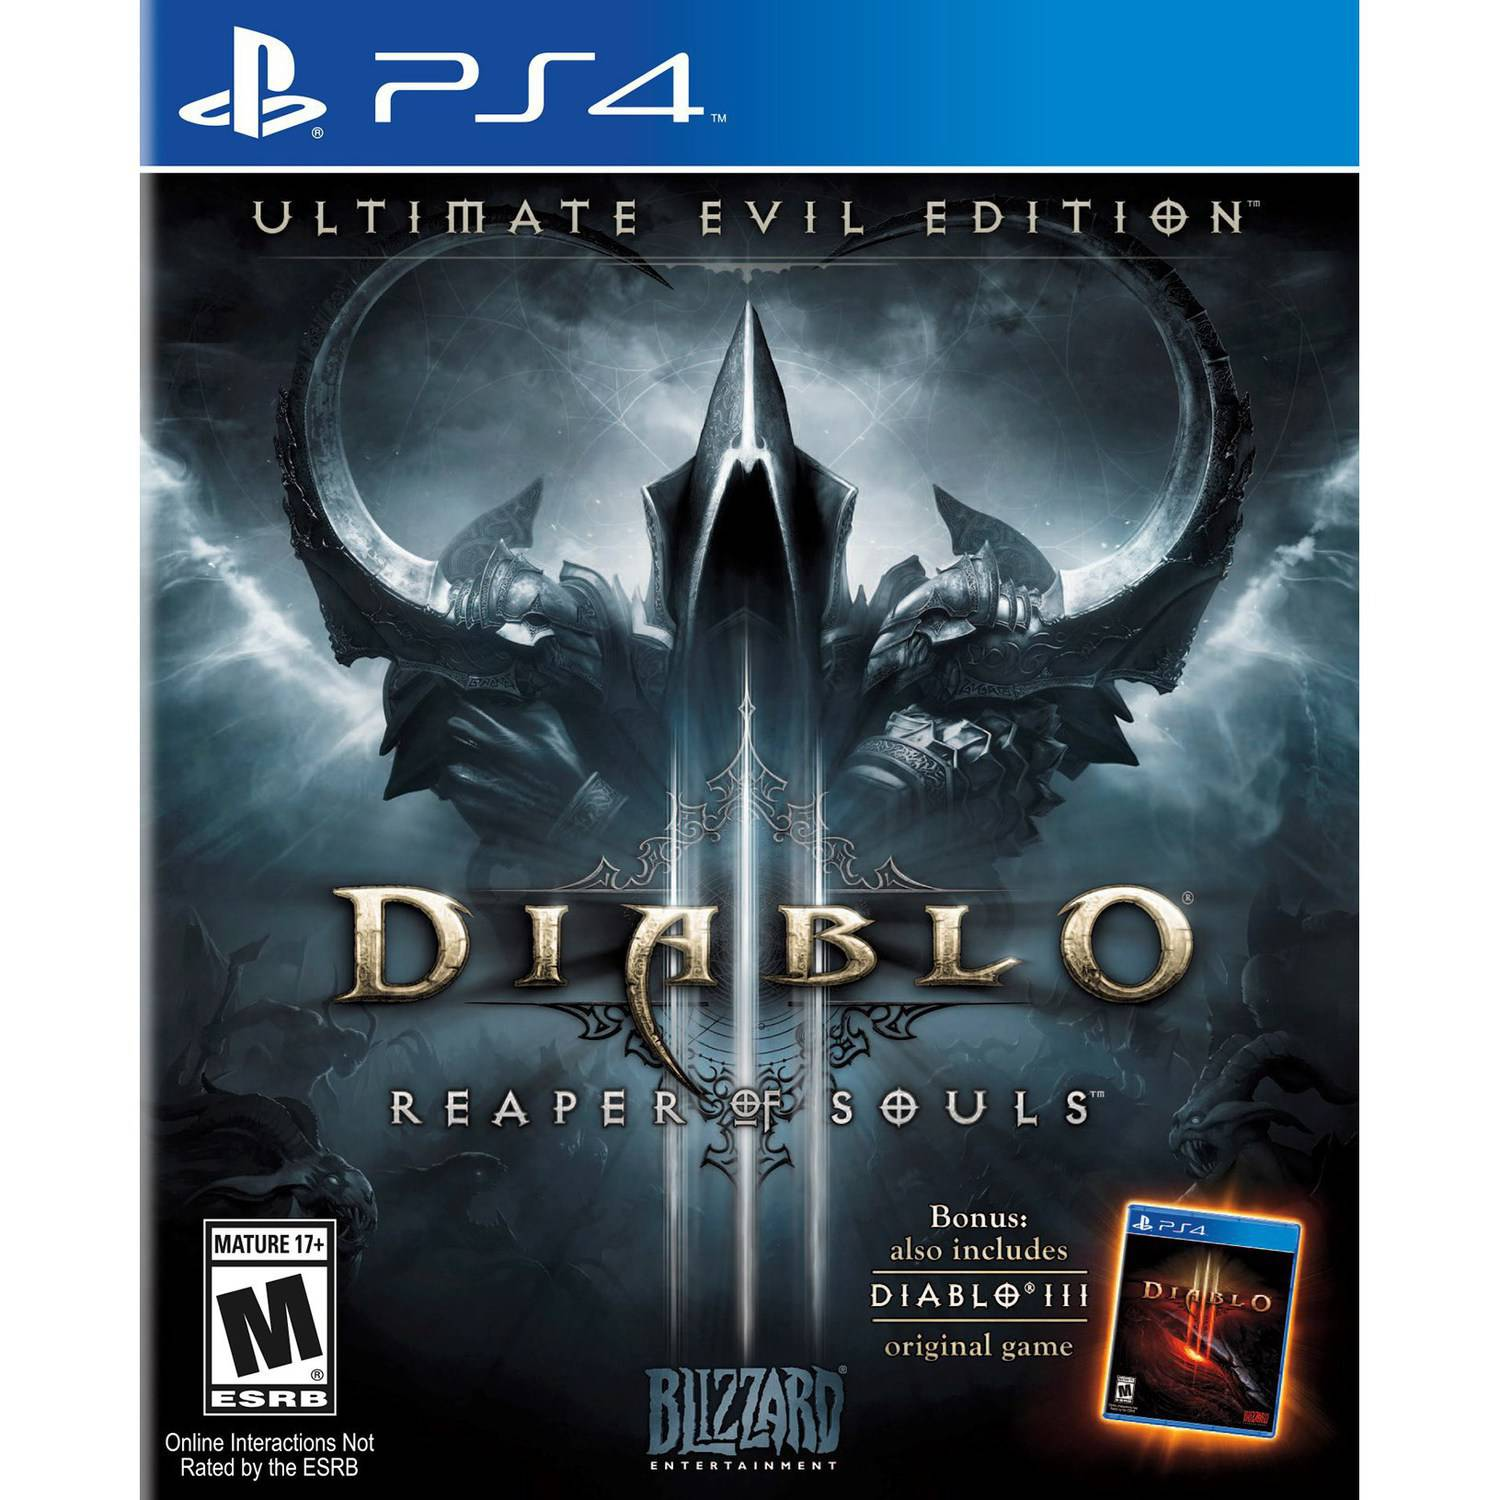 PS4 Diablo III: Reaper of Souls Ultimate Edition FULL PKG Oyun İndir